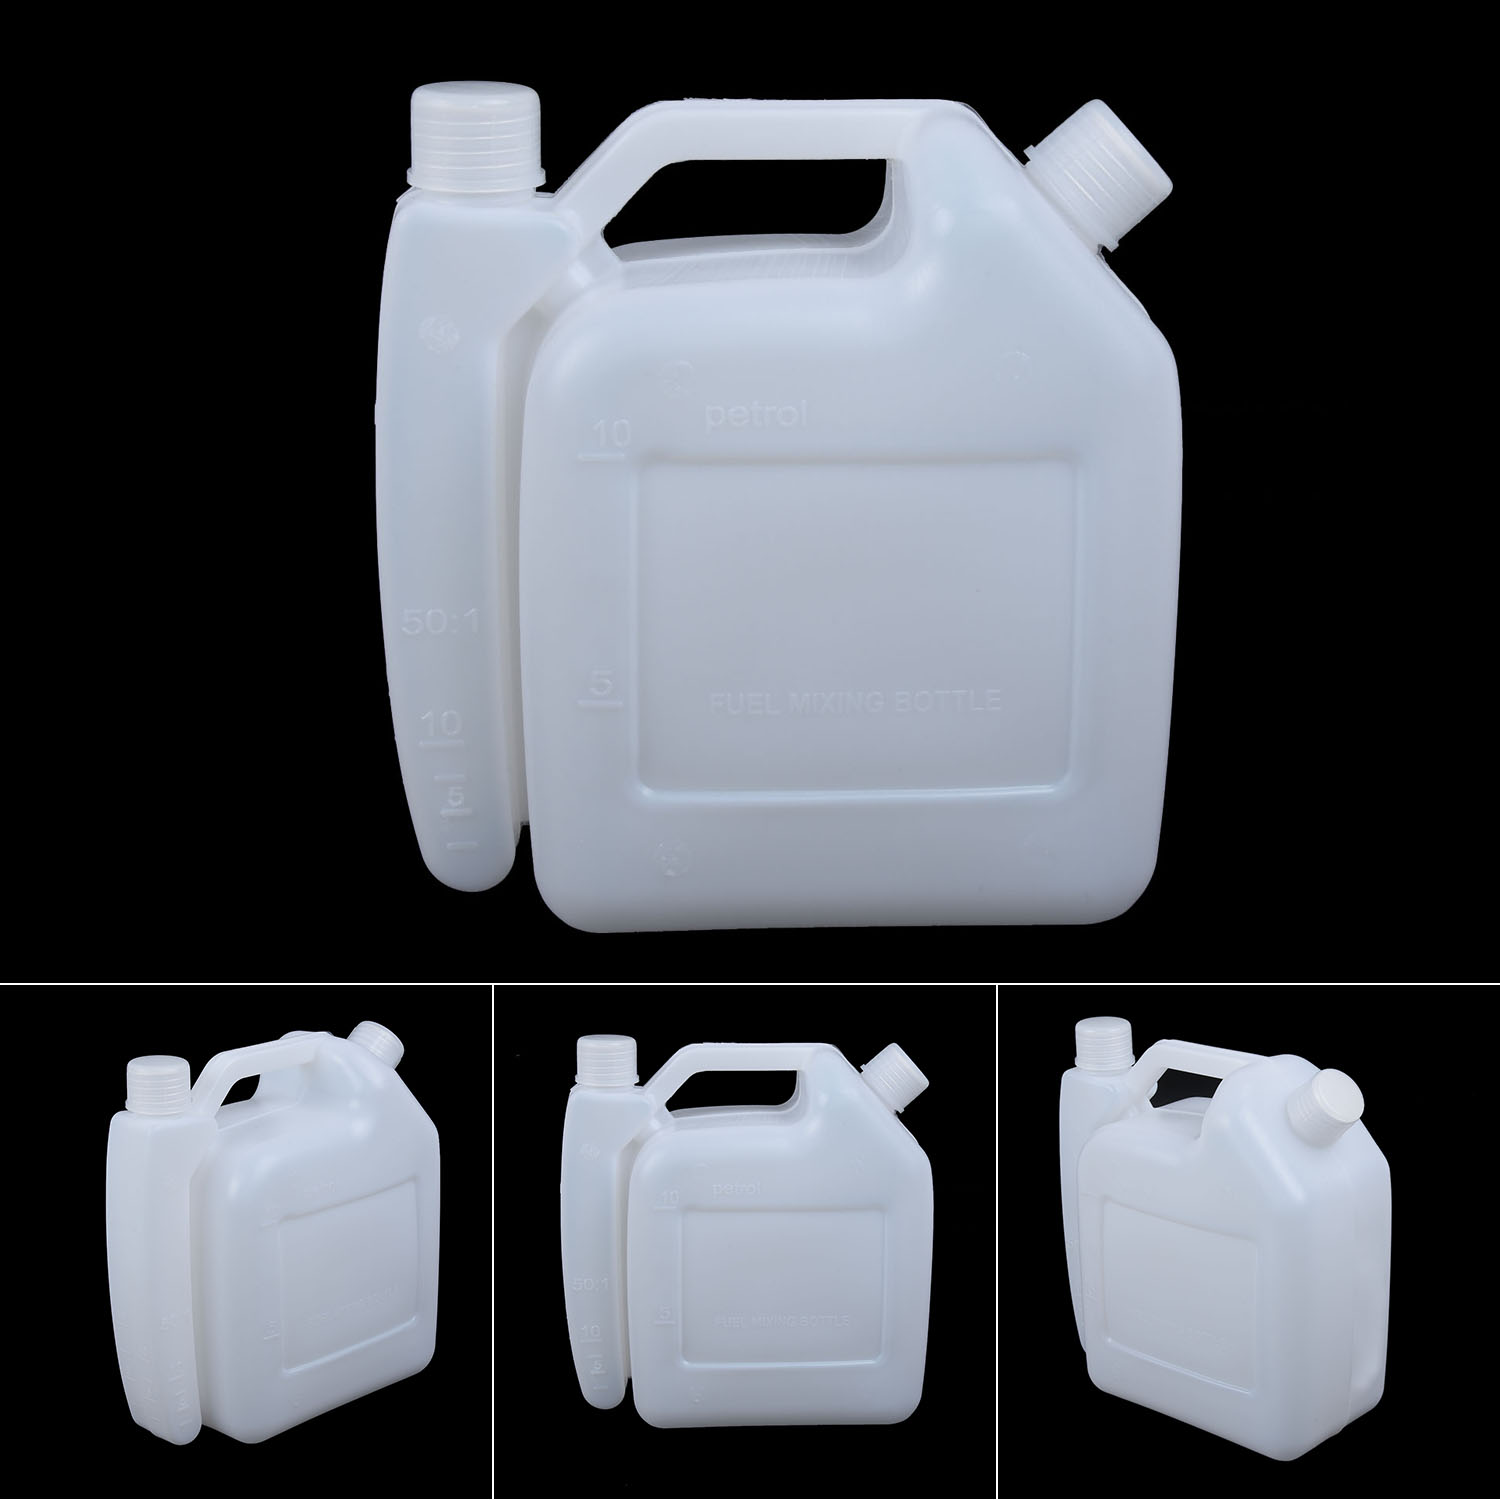 Fuel Petrol Oil Mixing Bottle Portable 1L 25:1 50:1 Container Storage 2 Stroke Oil Engine Durable